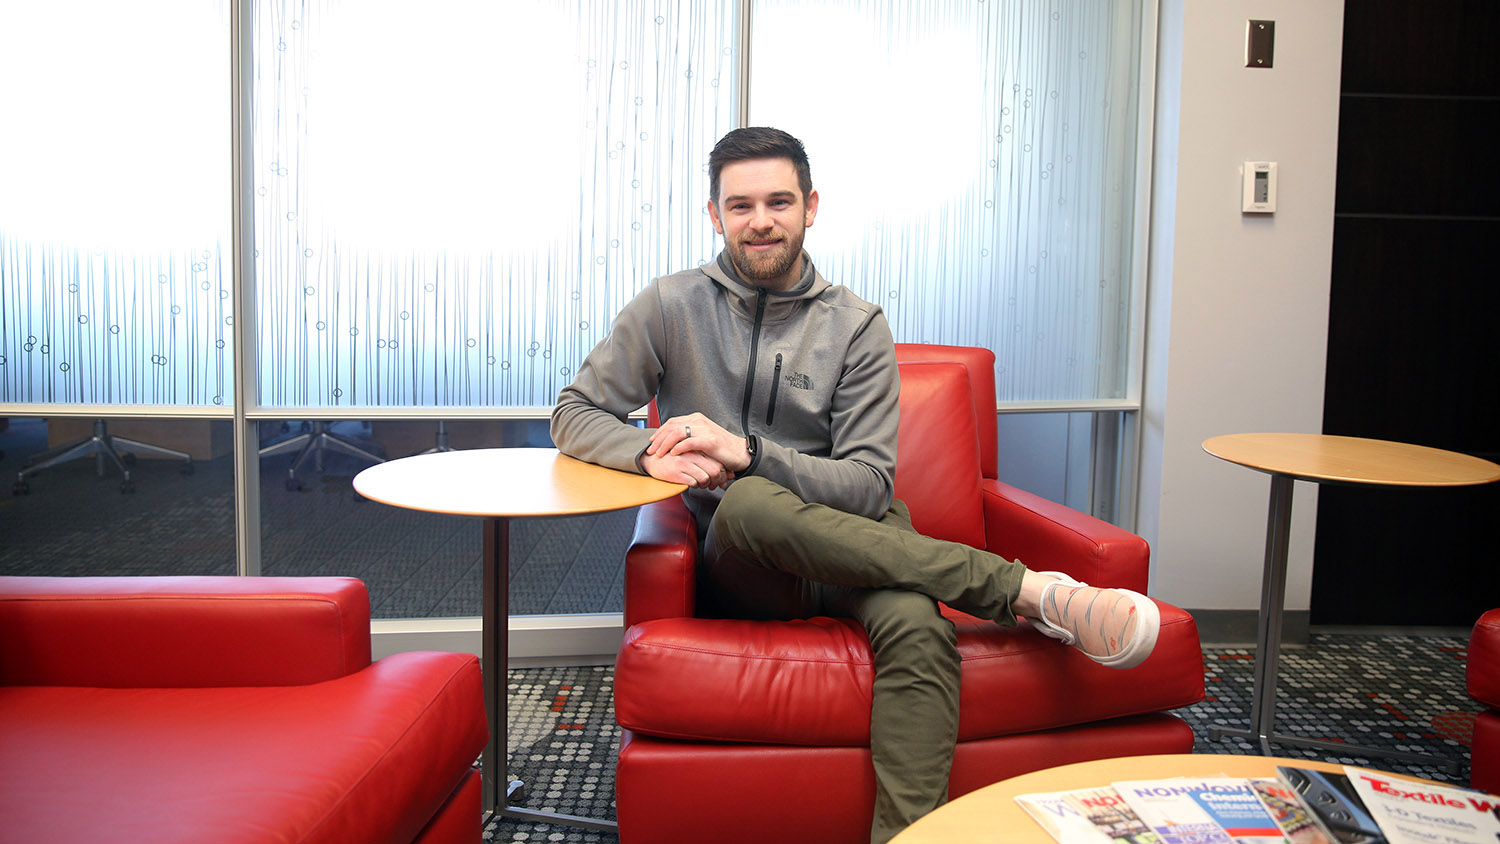 Colin Holloway leads footwear innovation at VF. He sist in the lounge in the College of Textiles